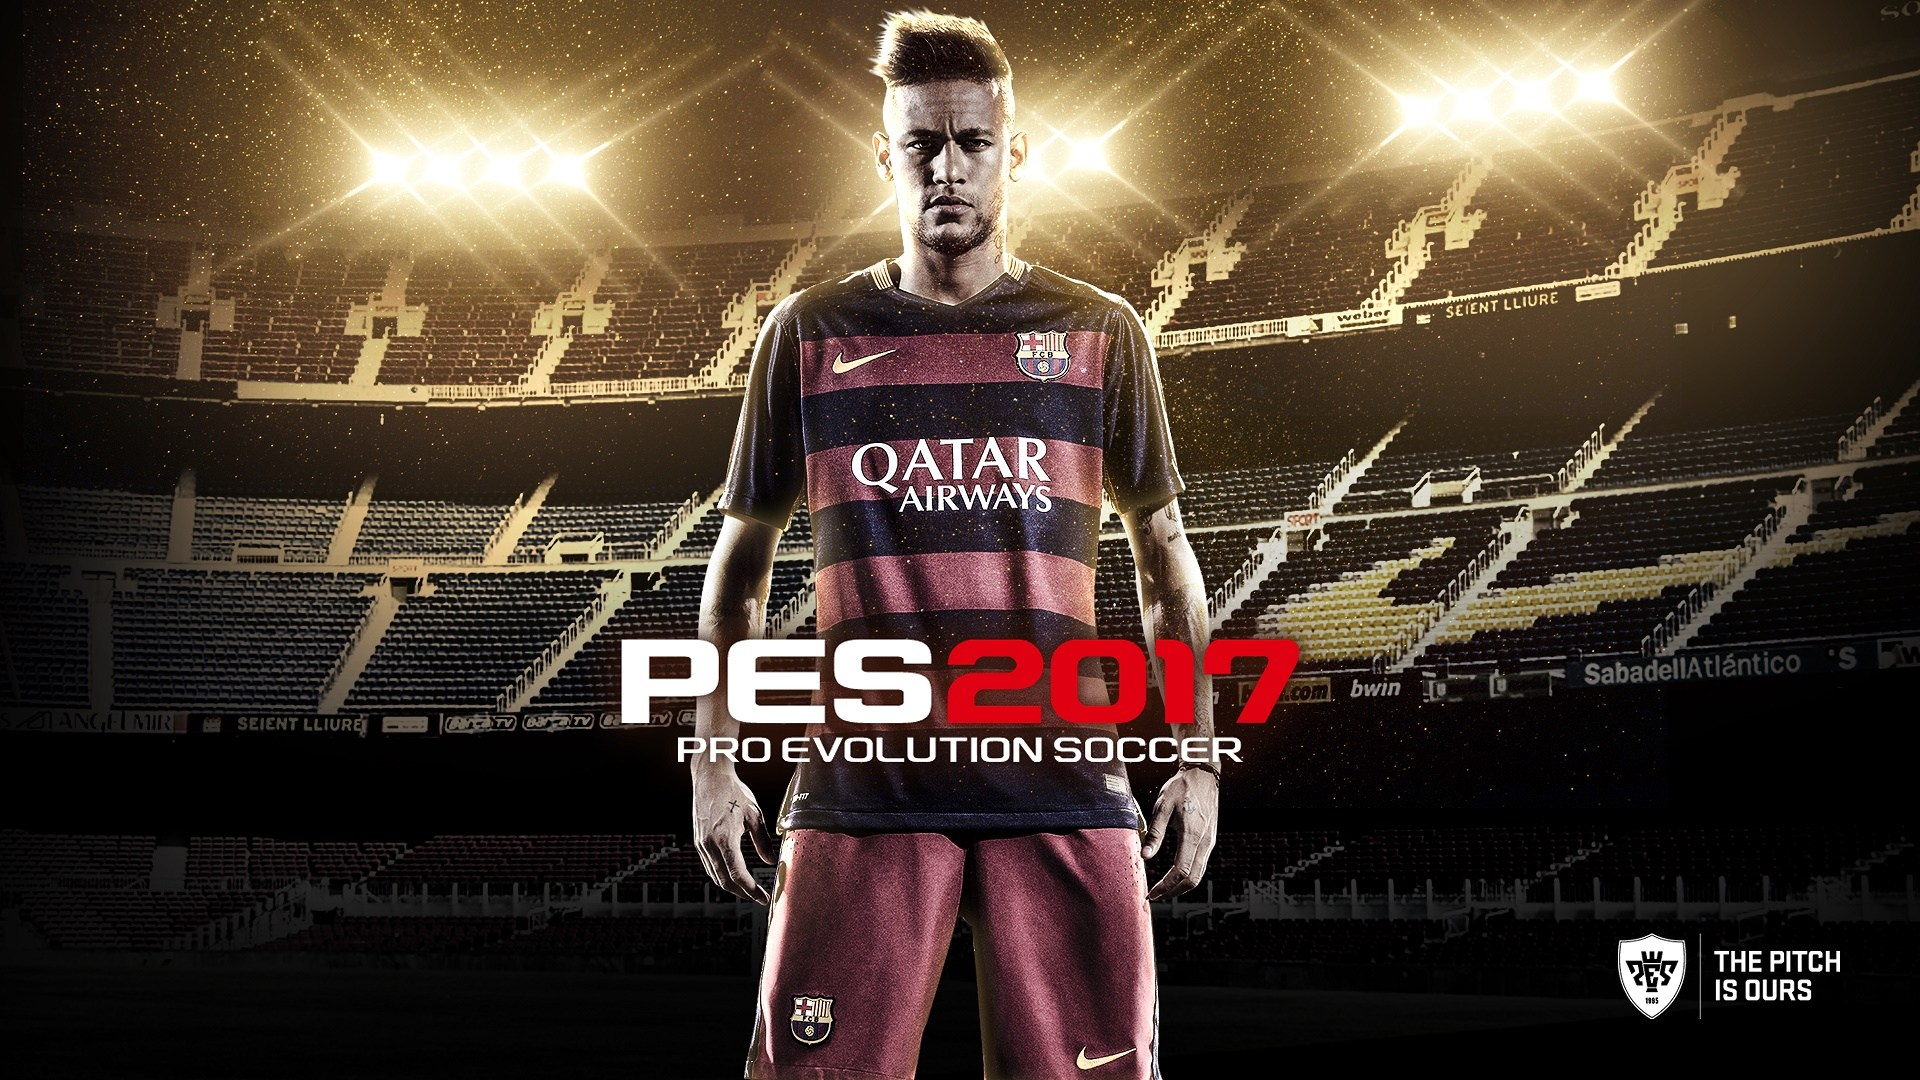 If you are a fan of the PES games, Pro Evolution Soccer 2017 is yet another great game to play!